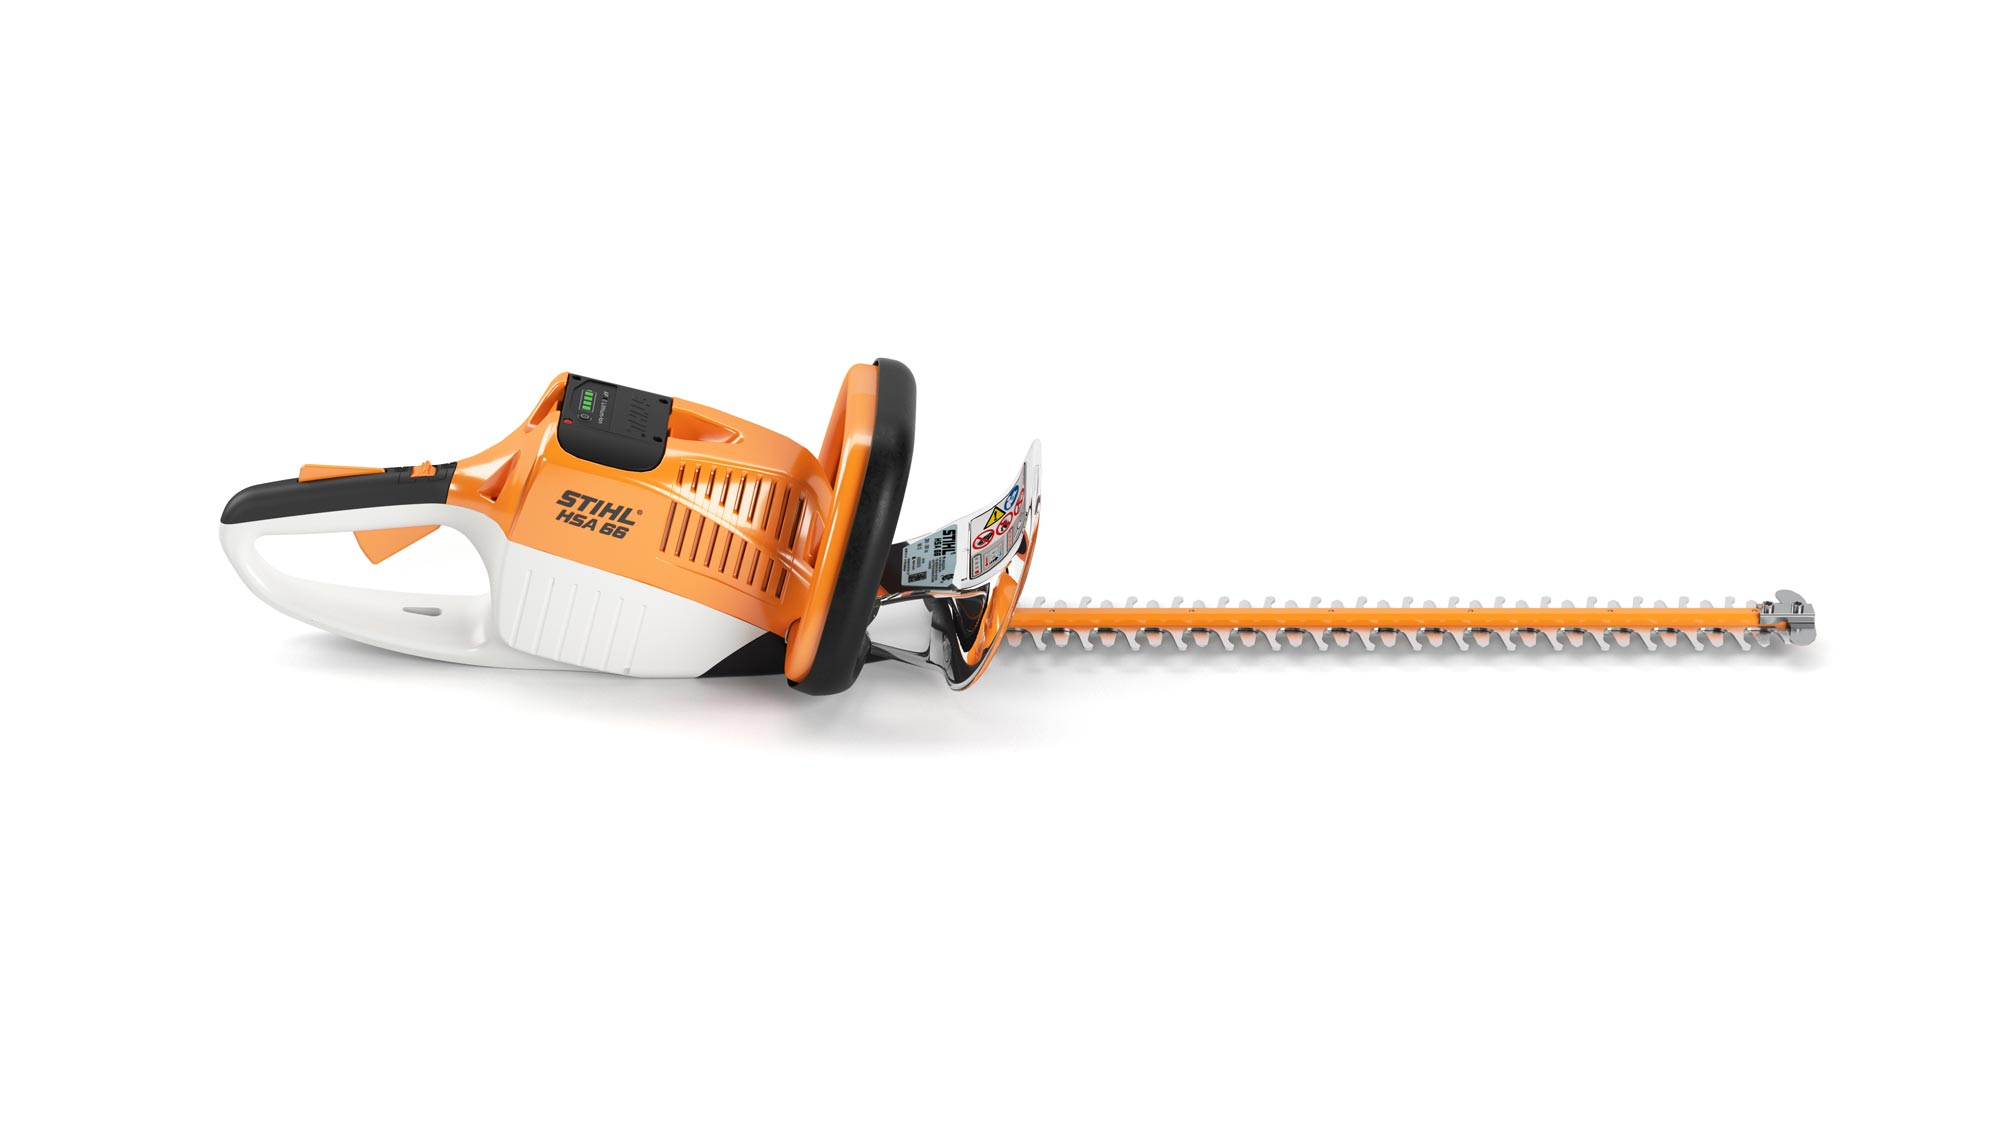 Orange STIHL hedge trimmer against white background